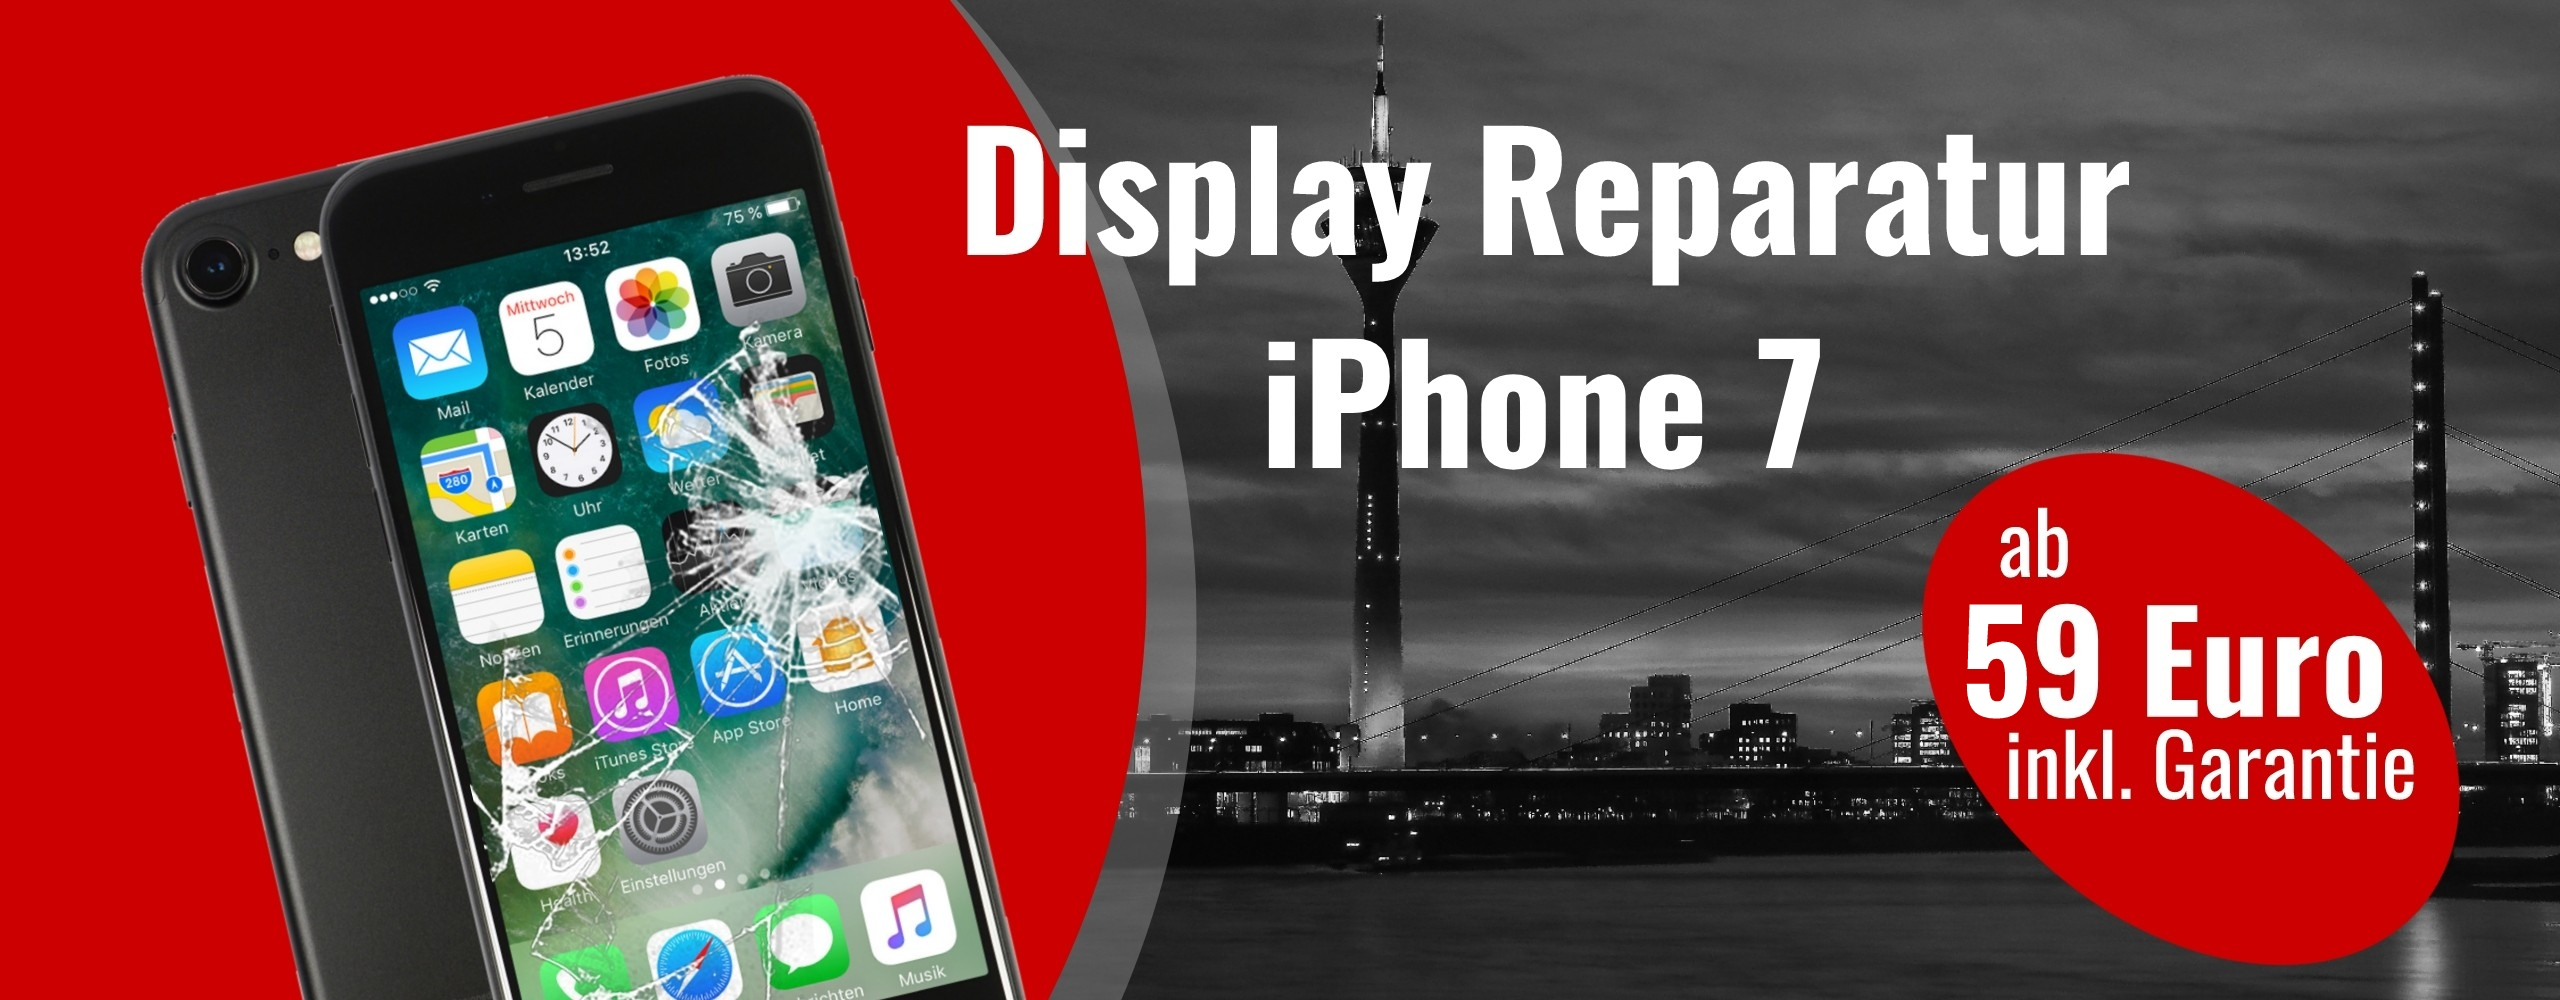 Smartphone Apple iPhone 7 Display Reparatur Glas Austausch